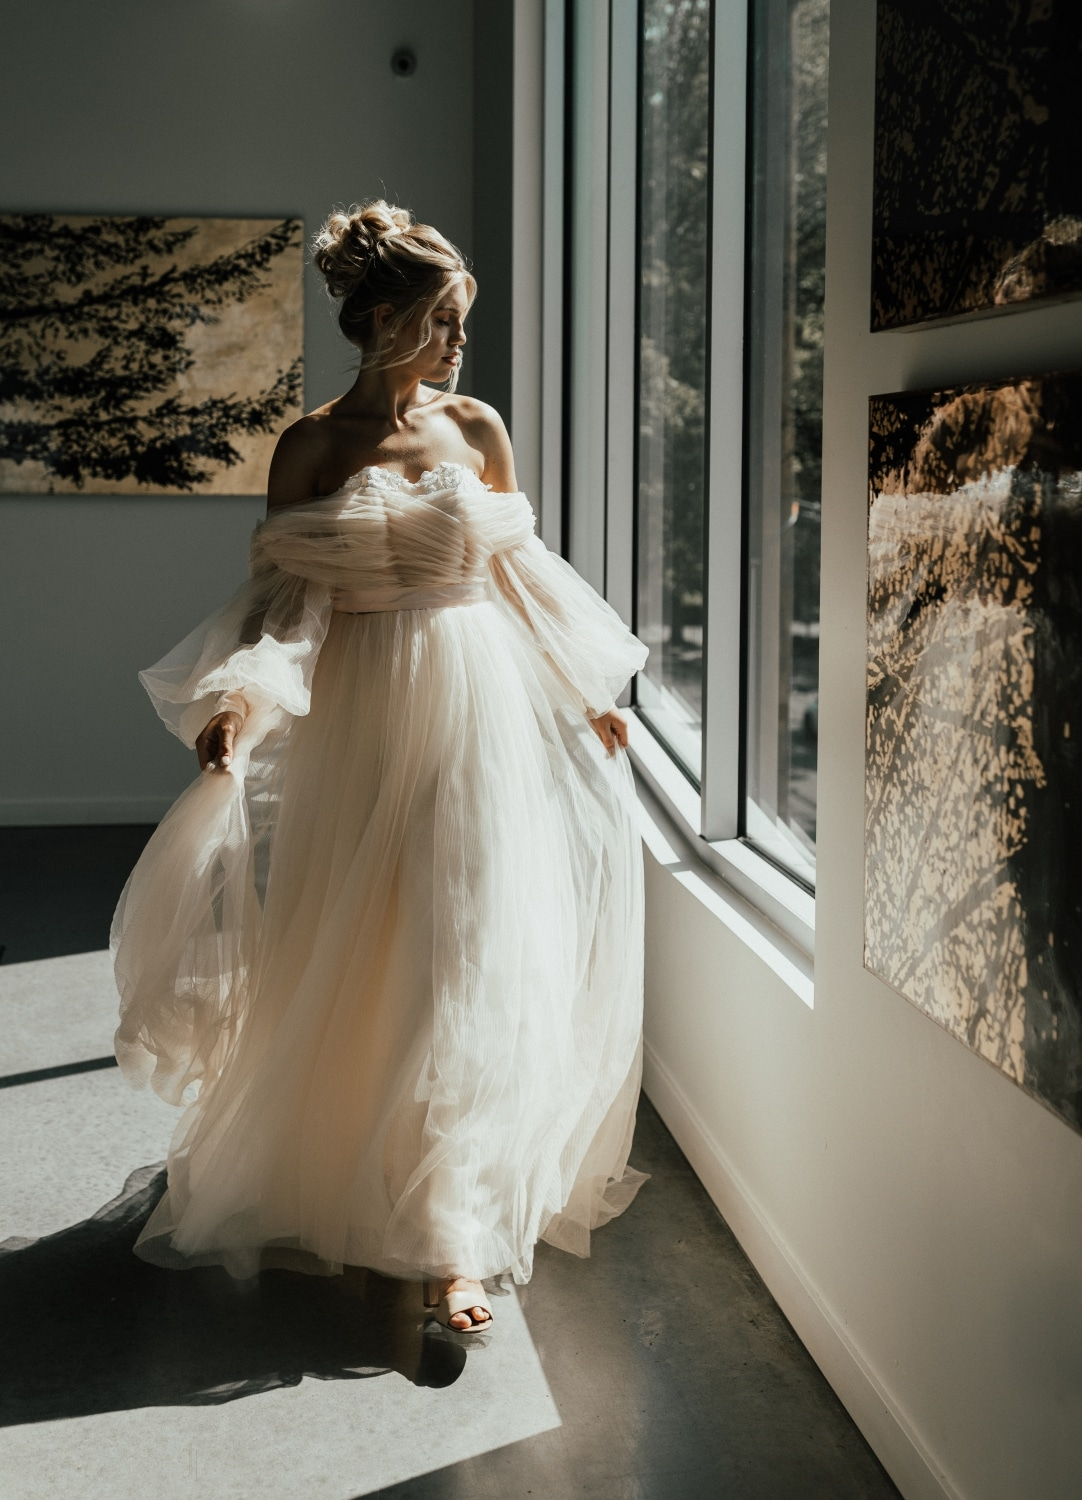 bride looking out of a window as she holds her dress to walk with an updo in her hair